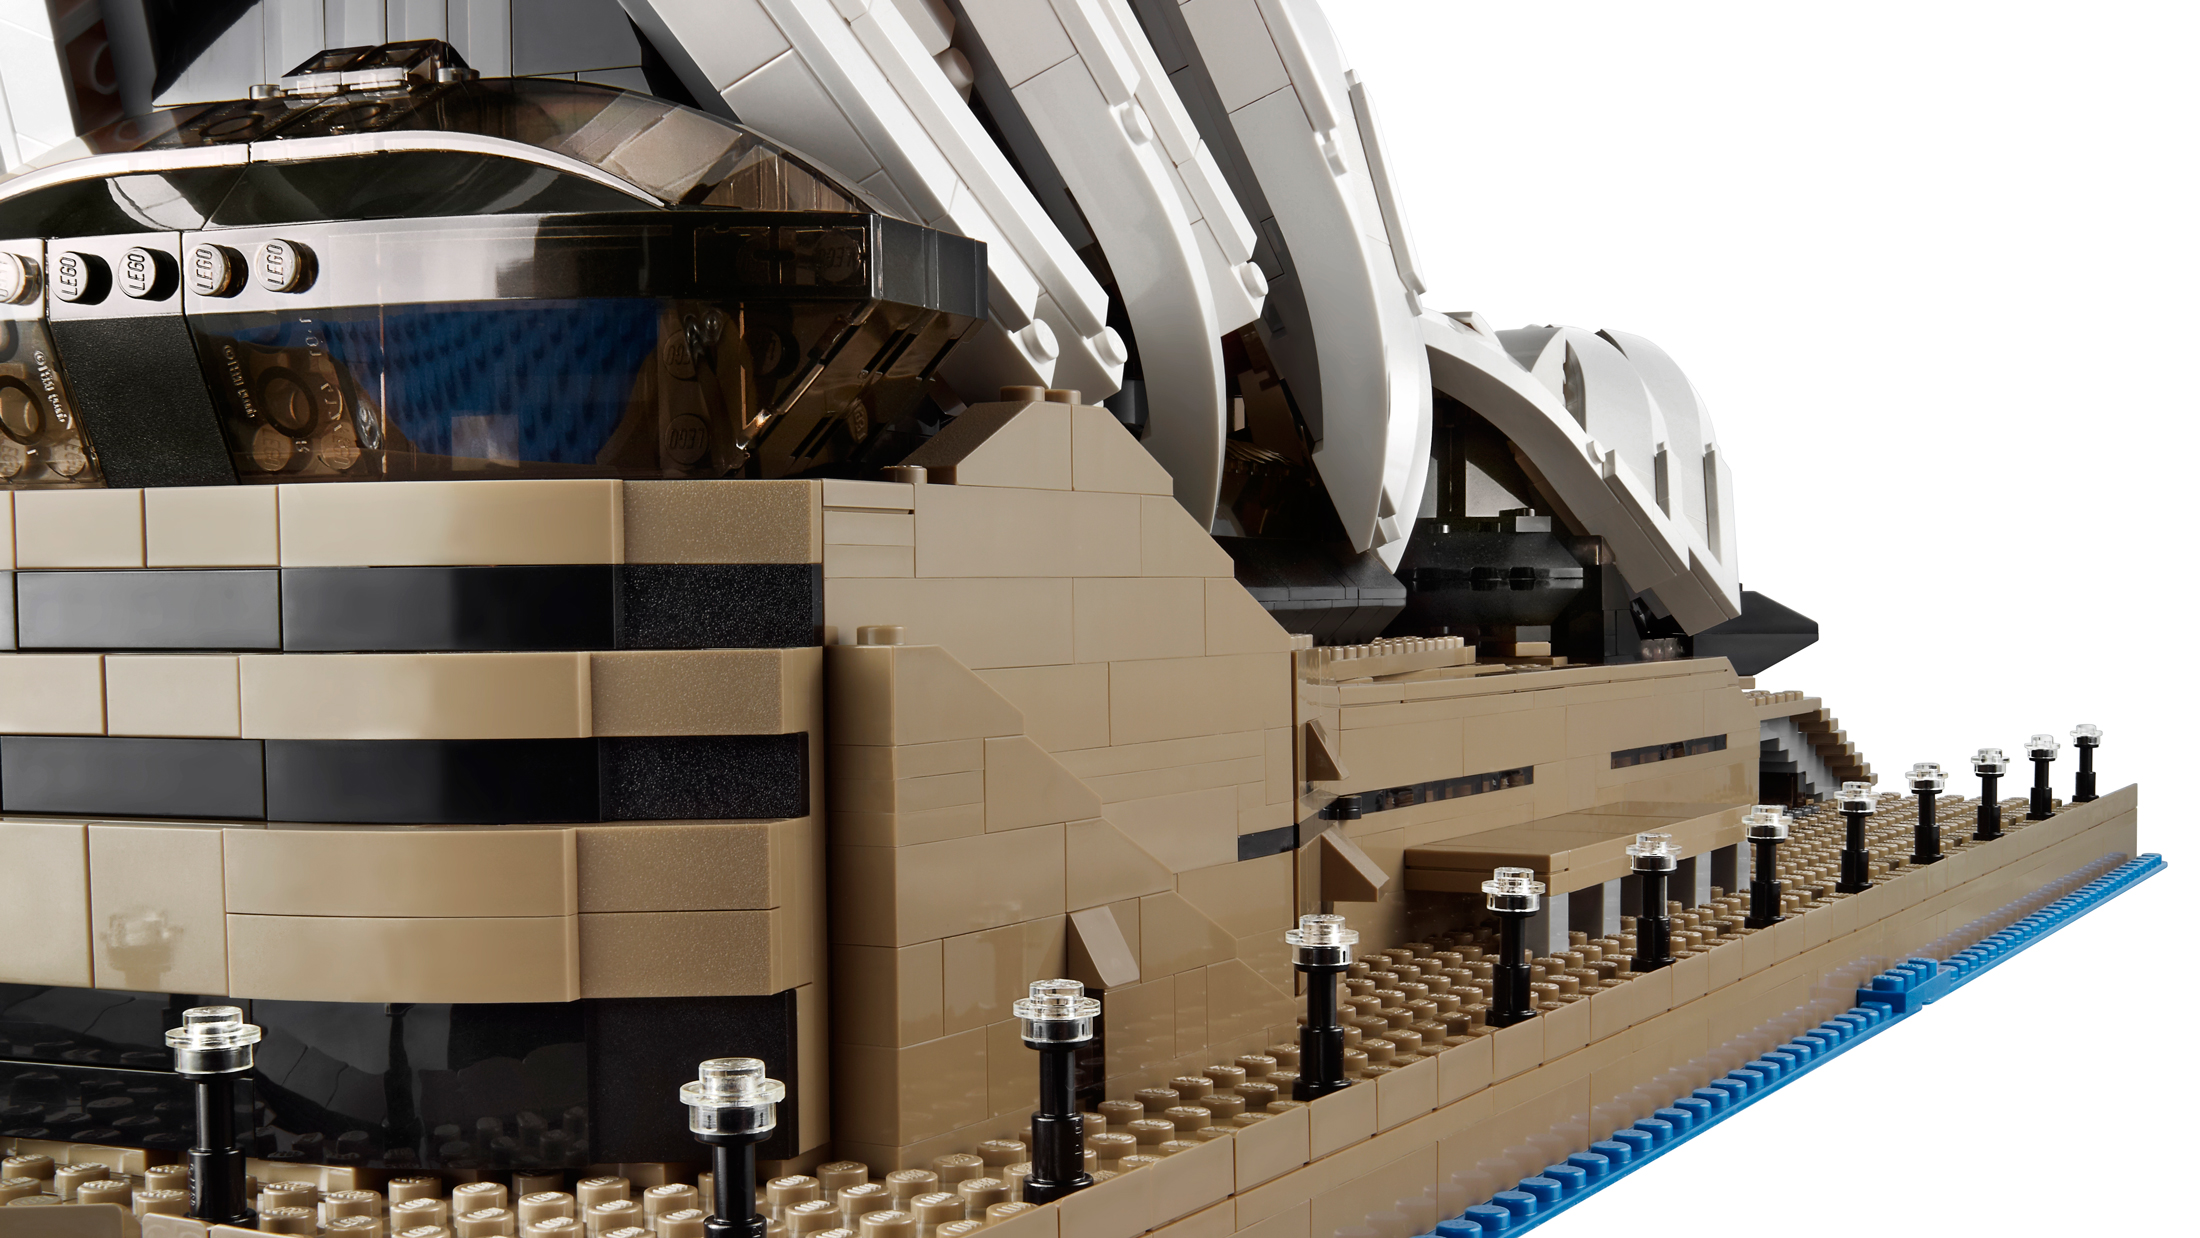 The new lego opera house is huge almost 3000 bricks Bricks sydney